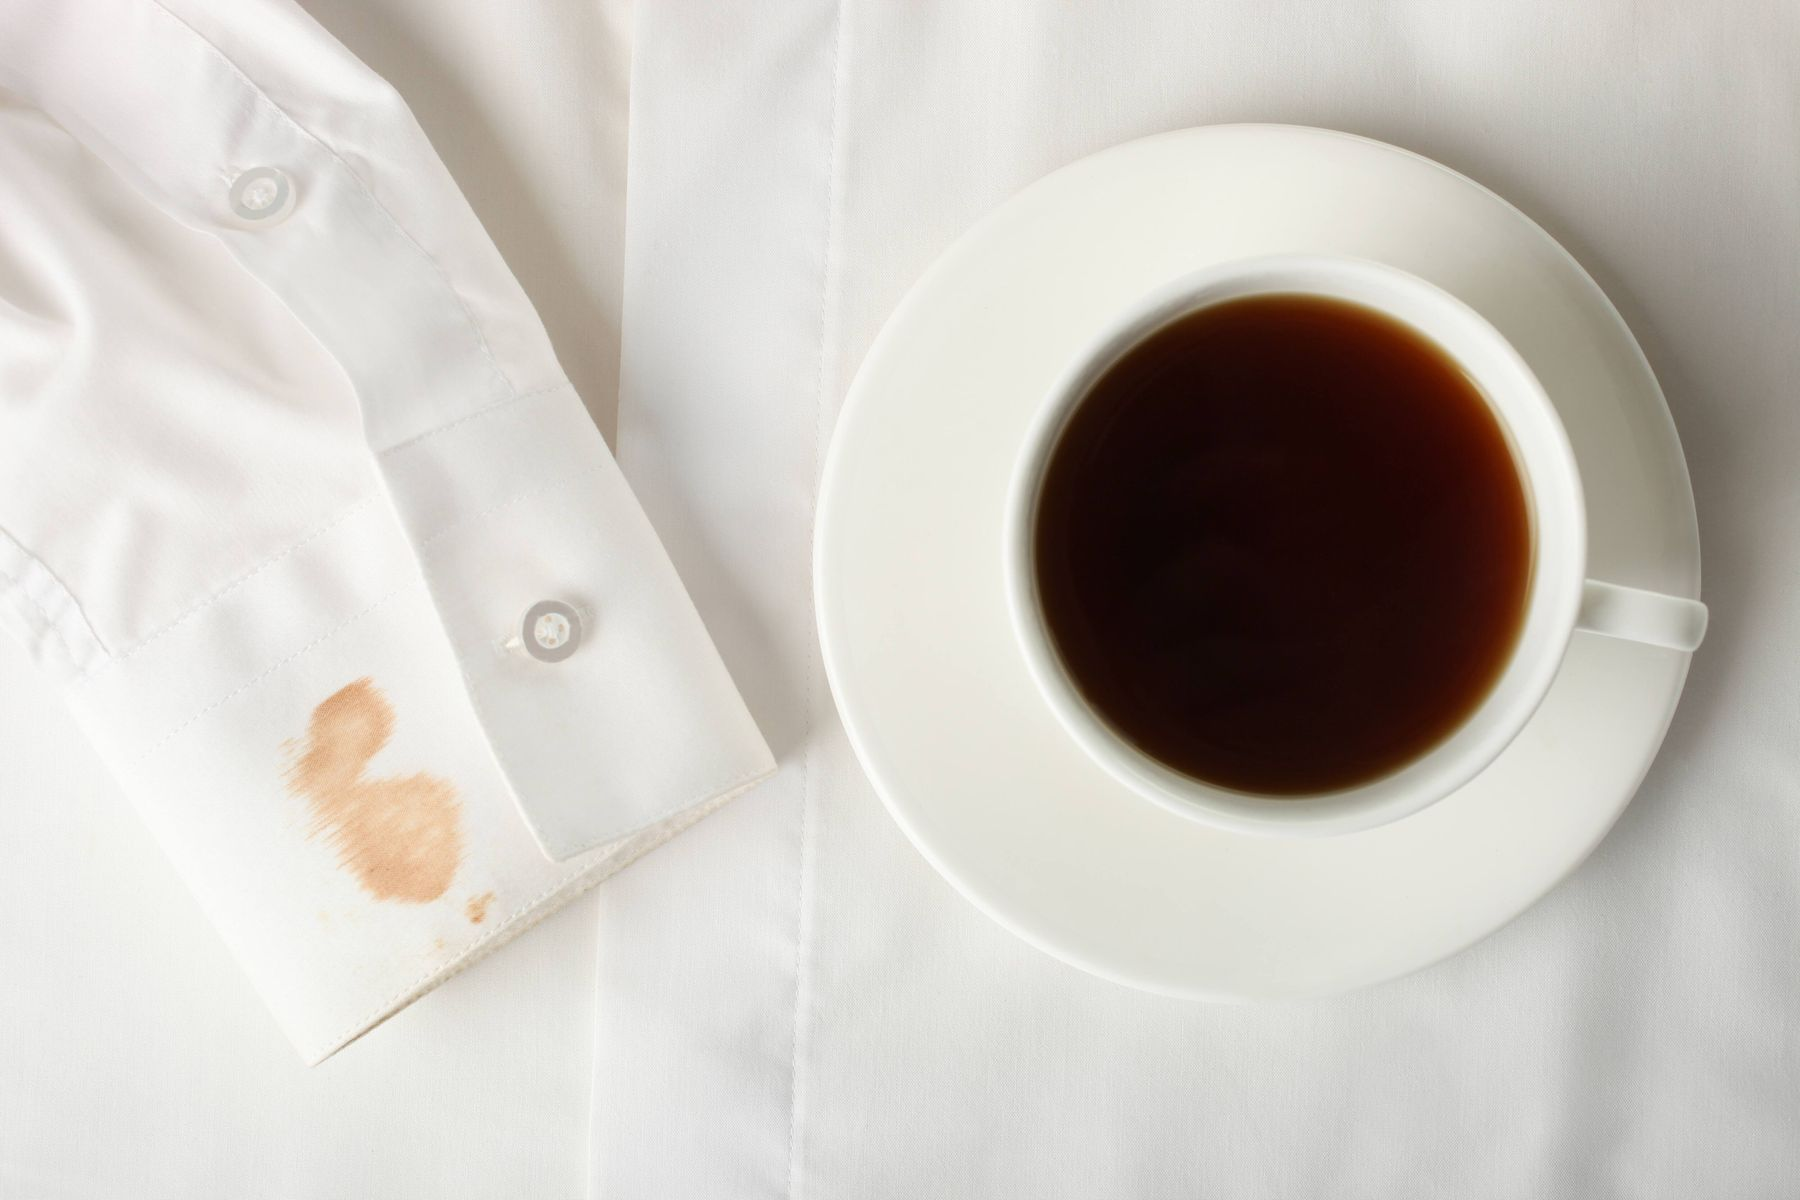 How to Remove Green Tea Stains from your Shirt | Get Set Clean